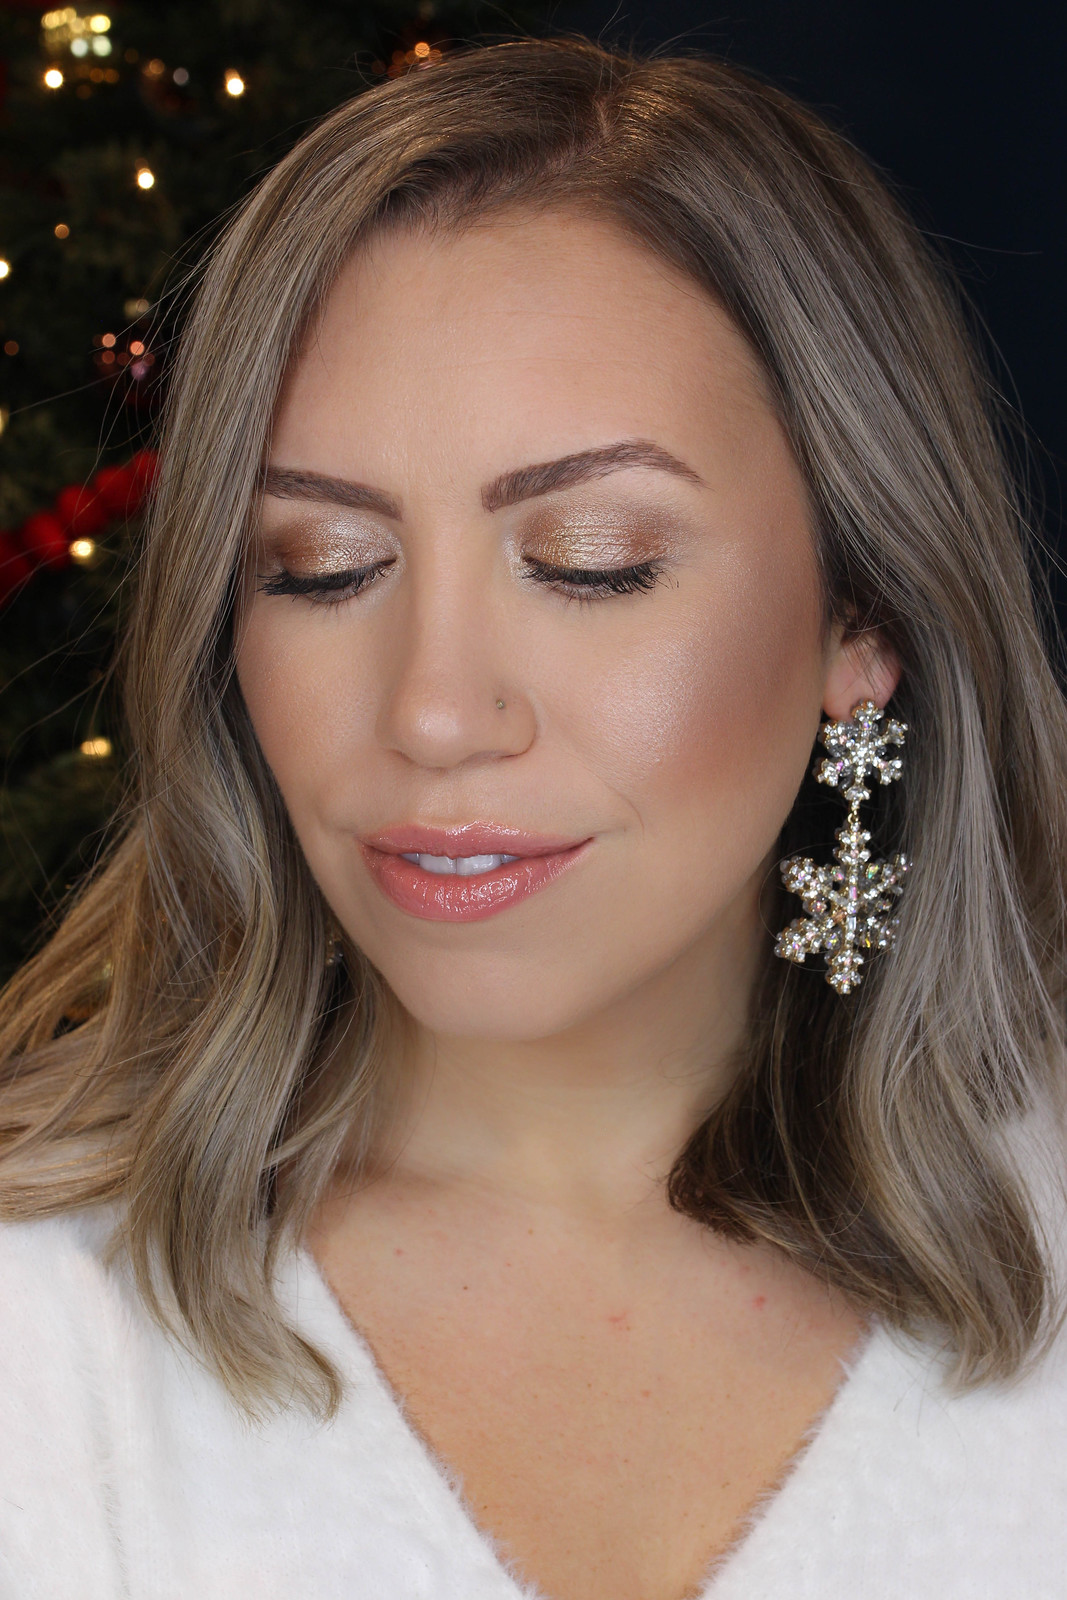 Easy Quick Step by Step Shimmery Holiday Makeup Tutorial